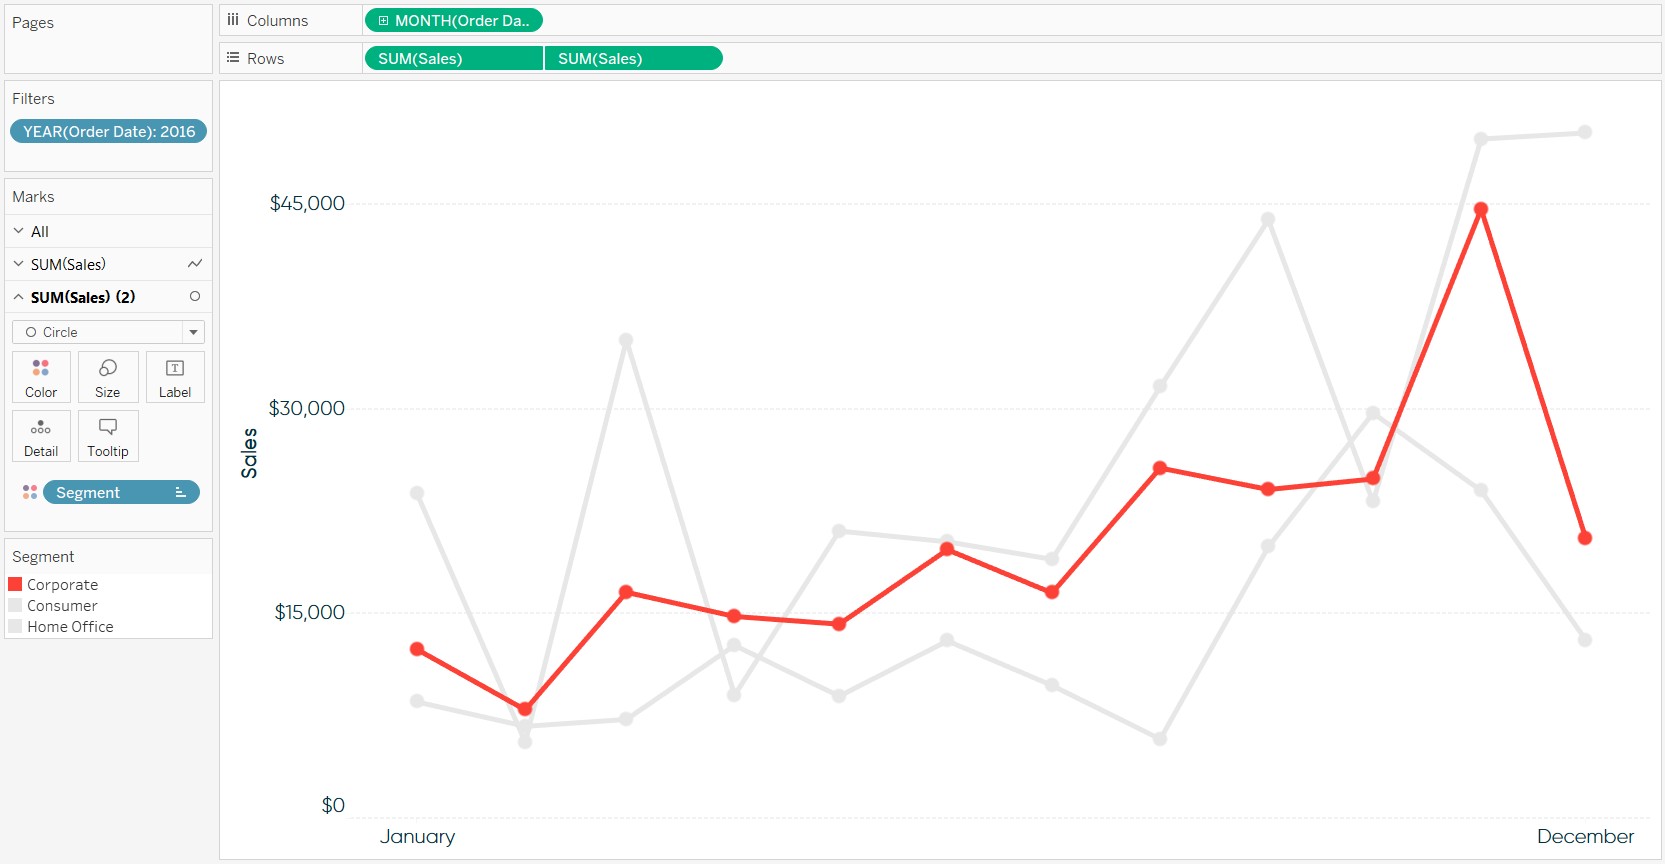 Tableau Sales by Segment Line Graph with Dual-Axis Circles